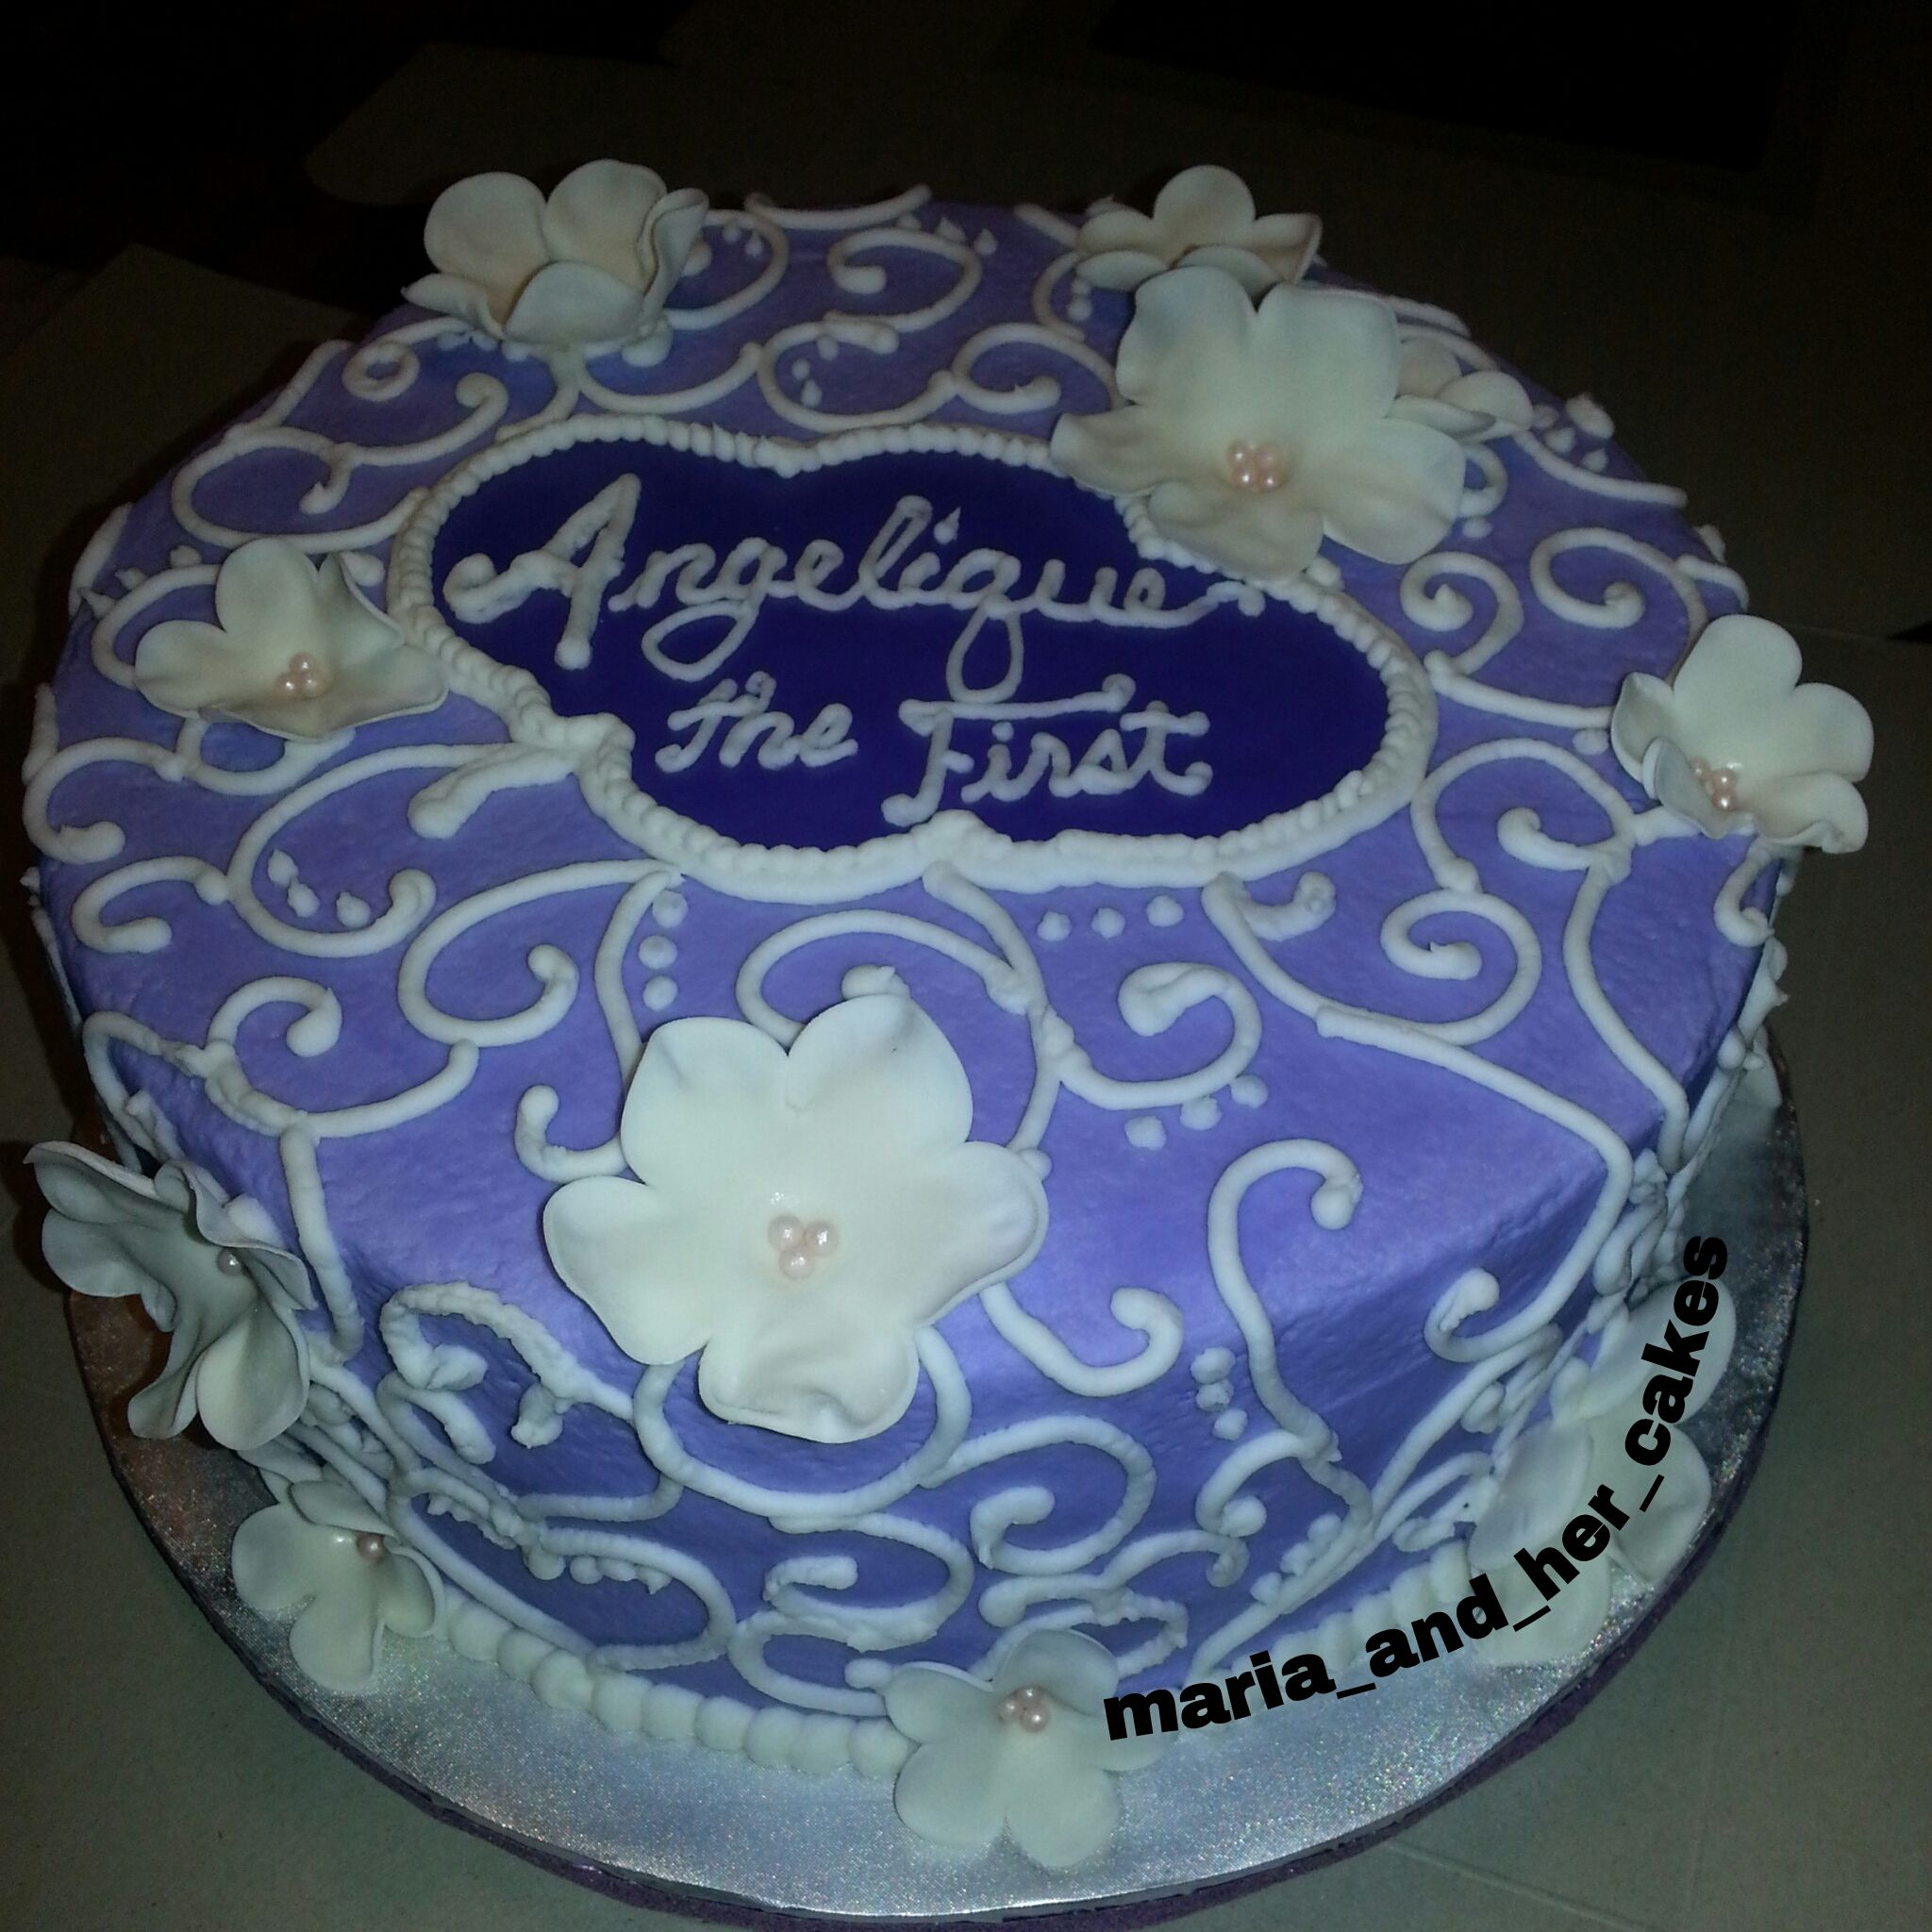 Birthday Cake based on Sofia The First